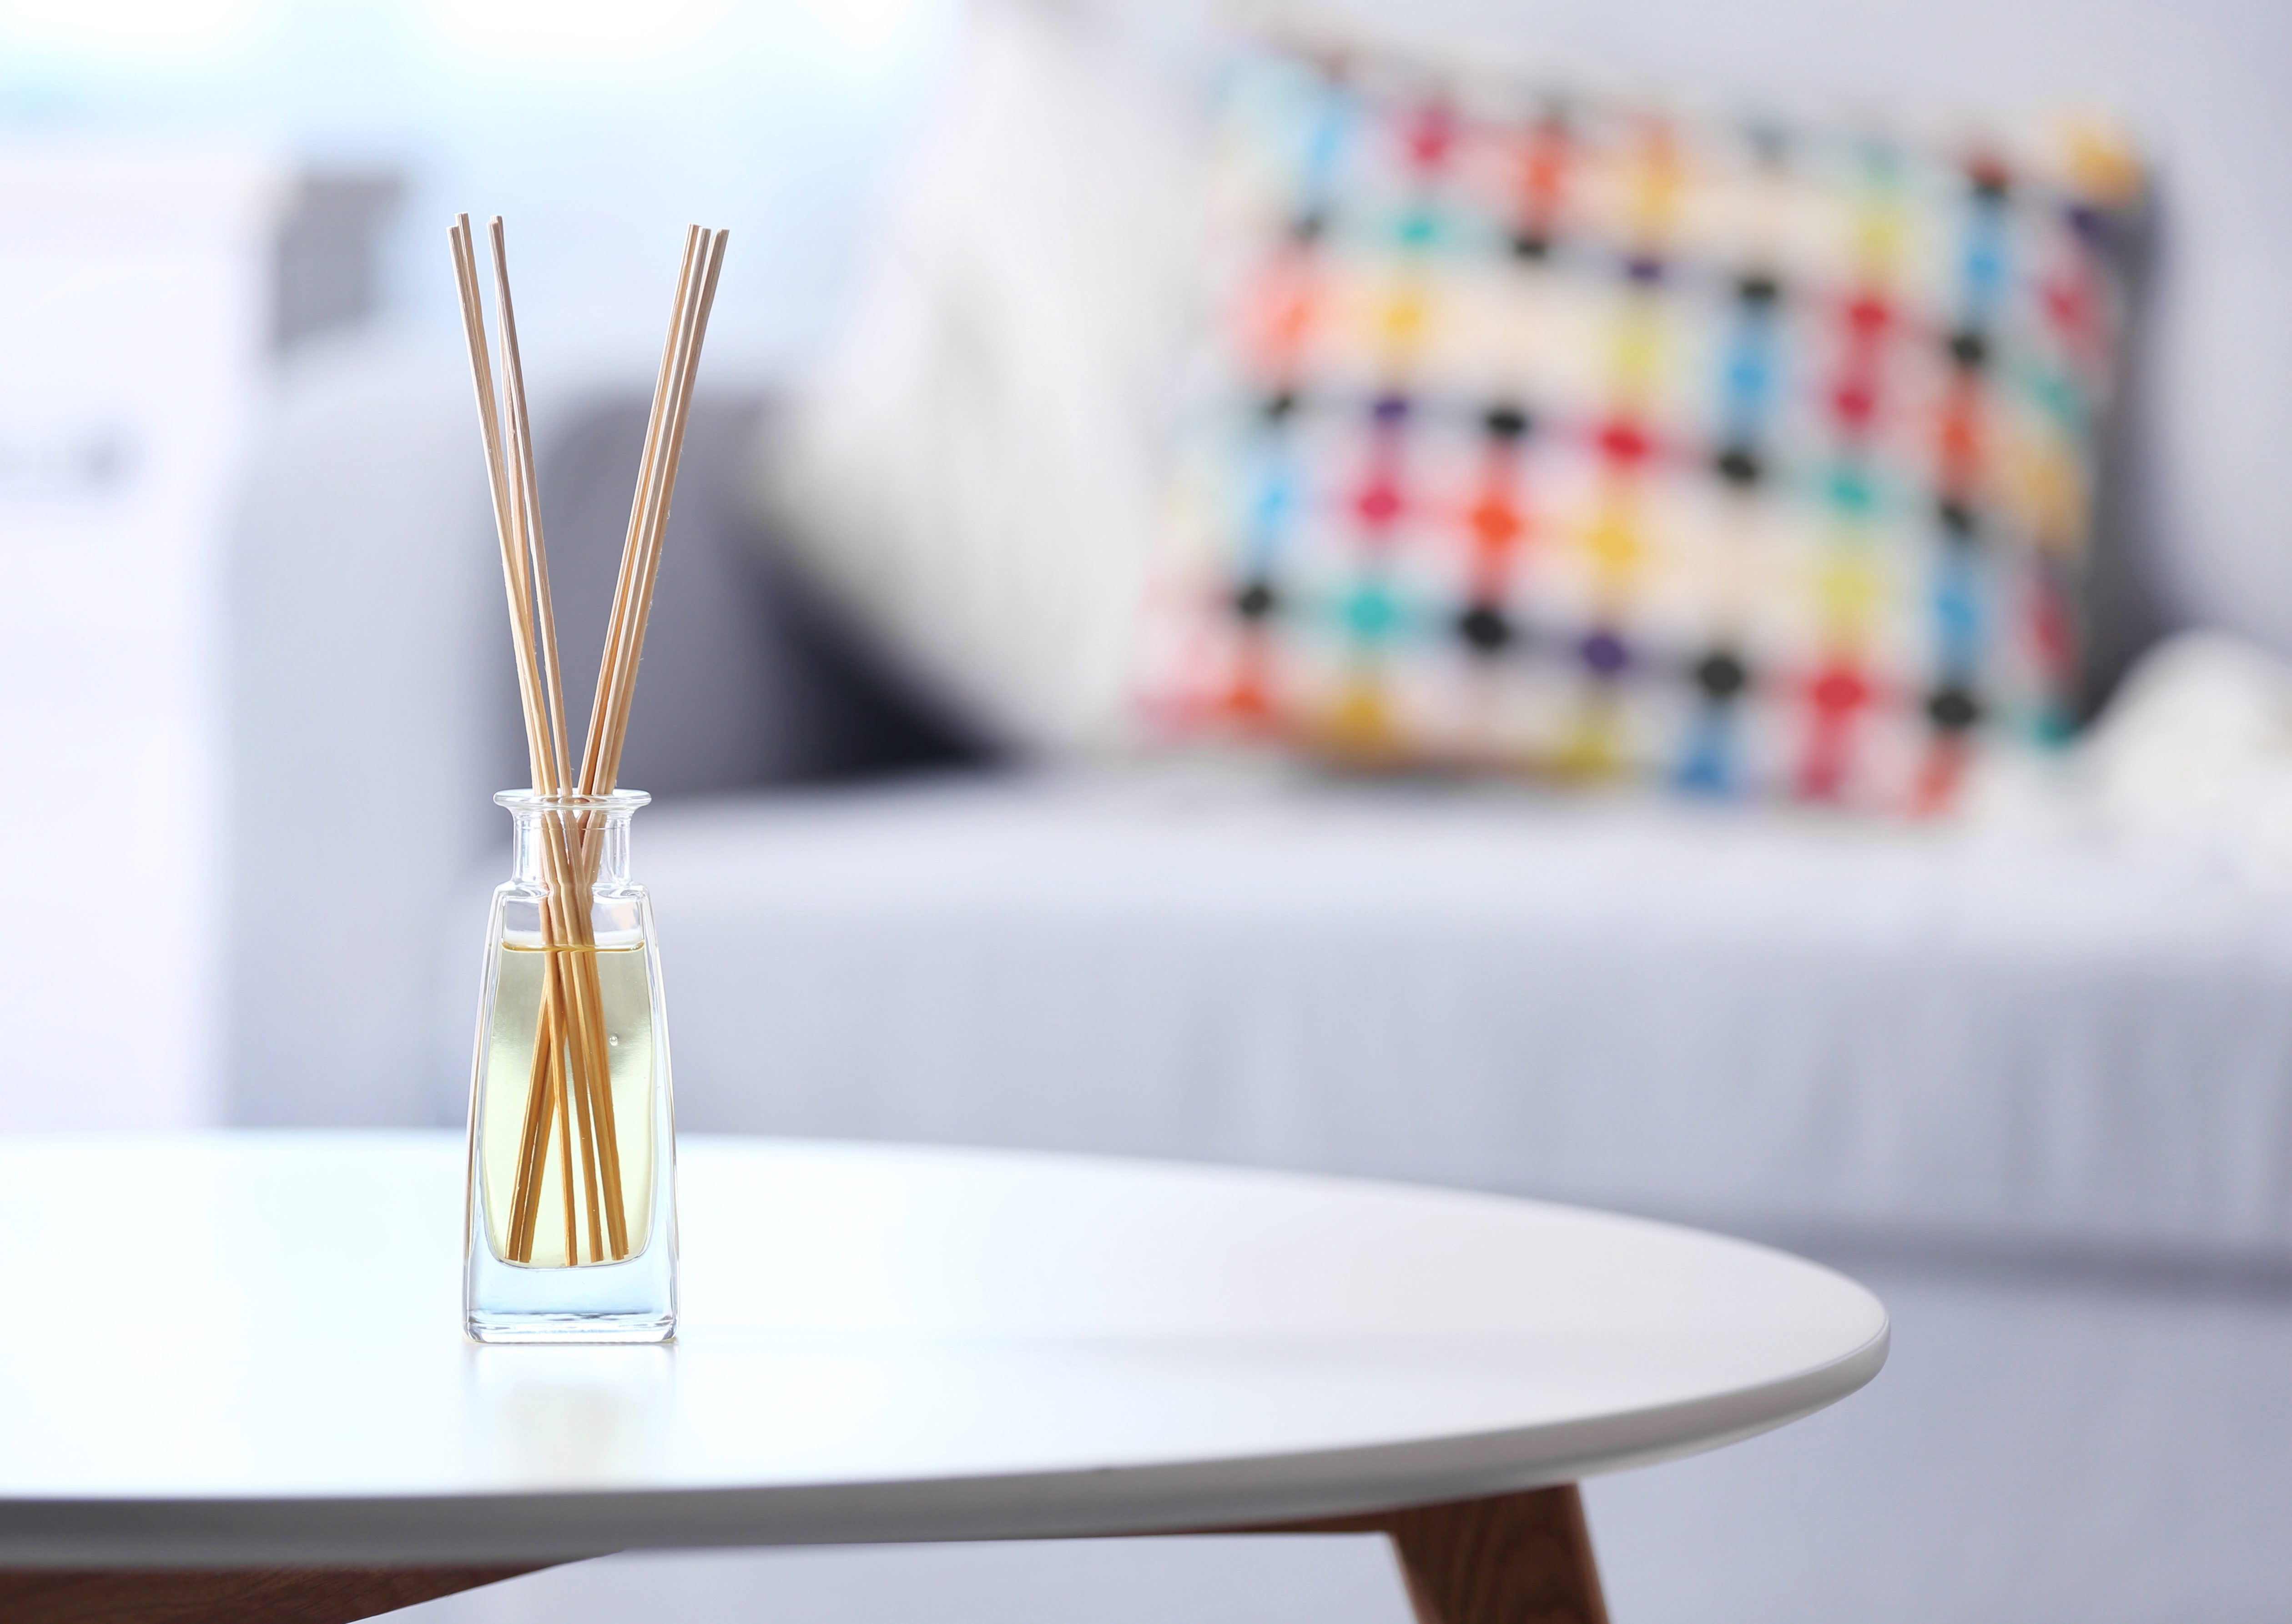 Handmade reed freshener on white table in living room, close up